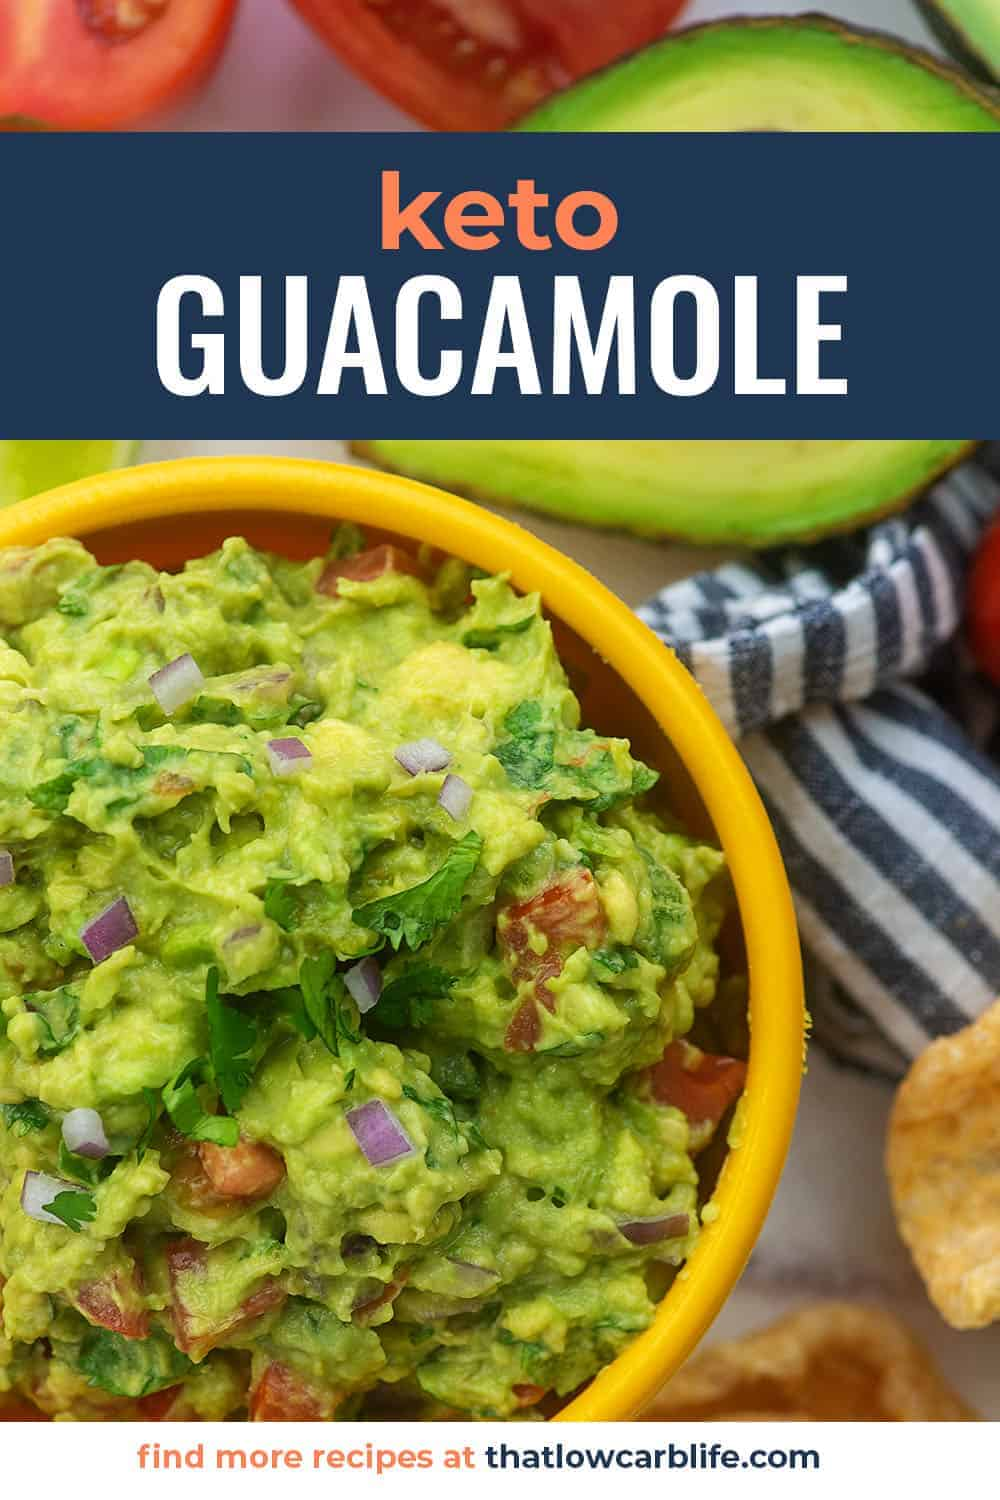 keto guacamole in yellow dish